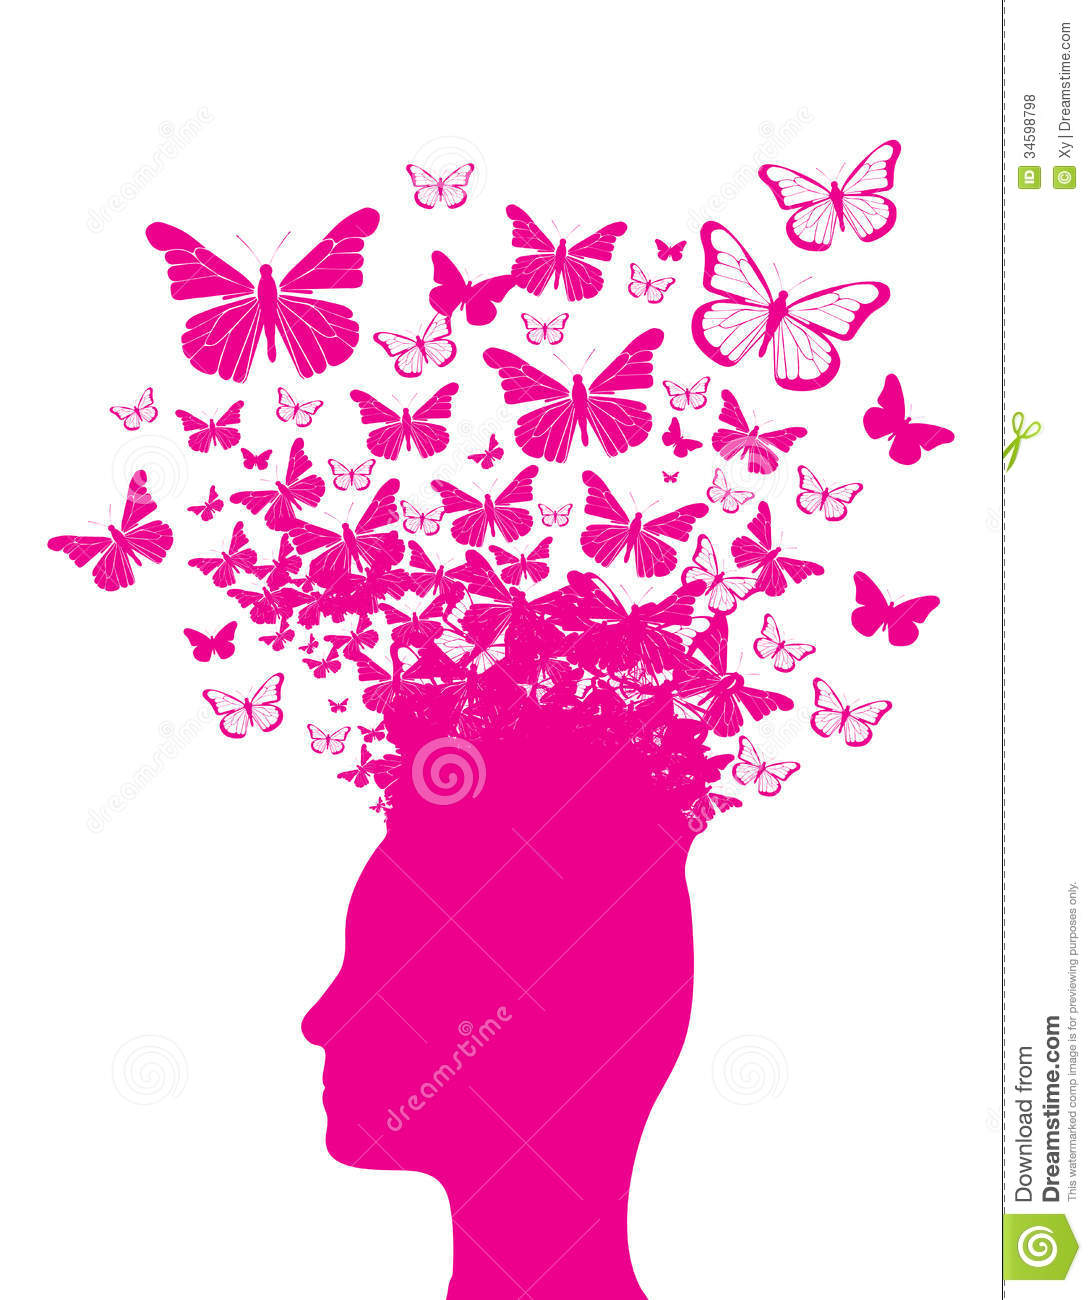 Pink Head Silhouette And Butterflies Royalty Free Stock Photos - Image ...